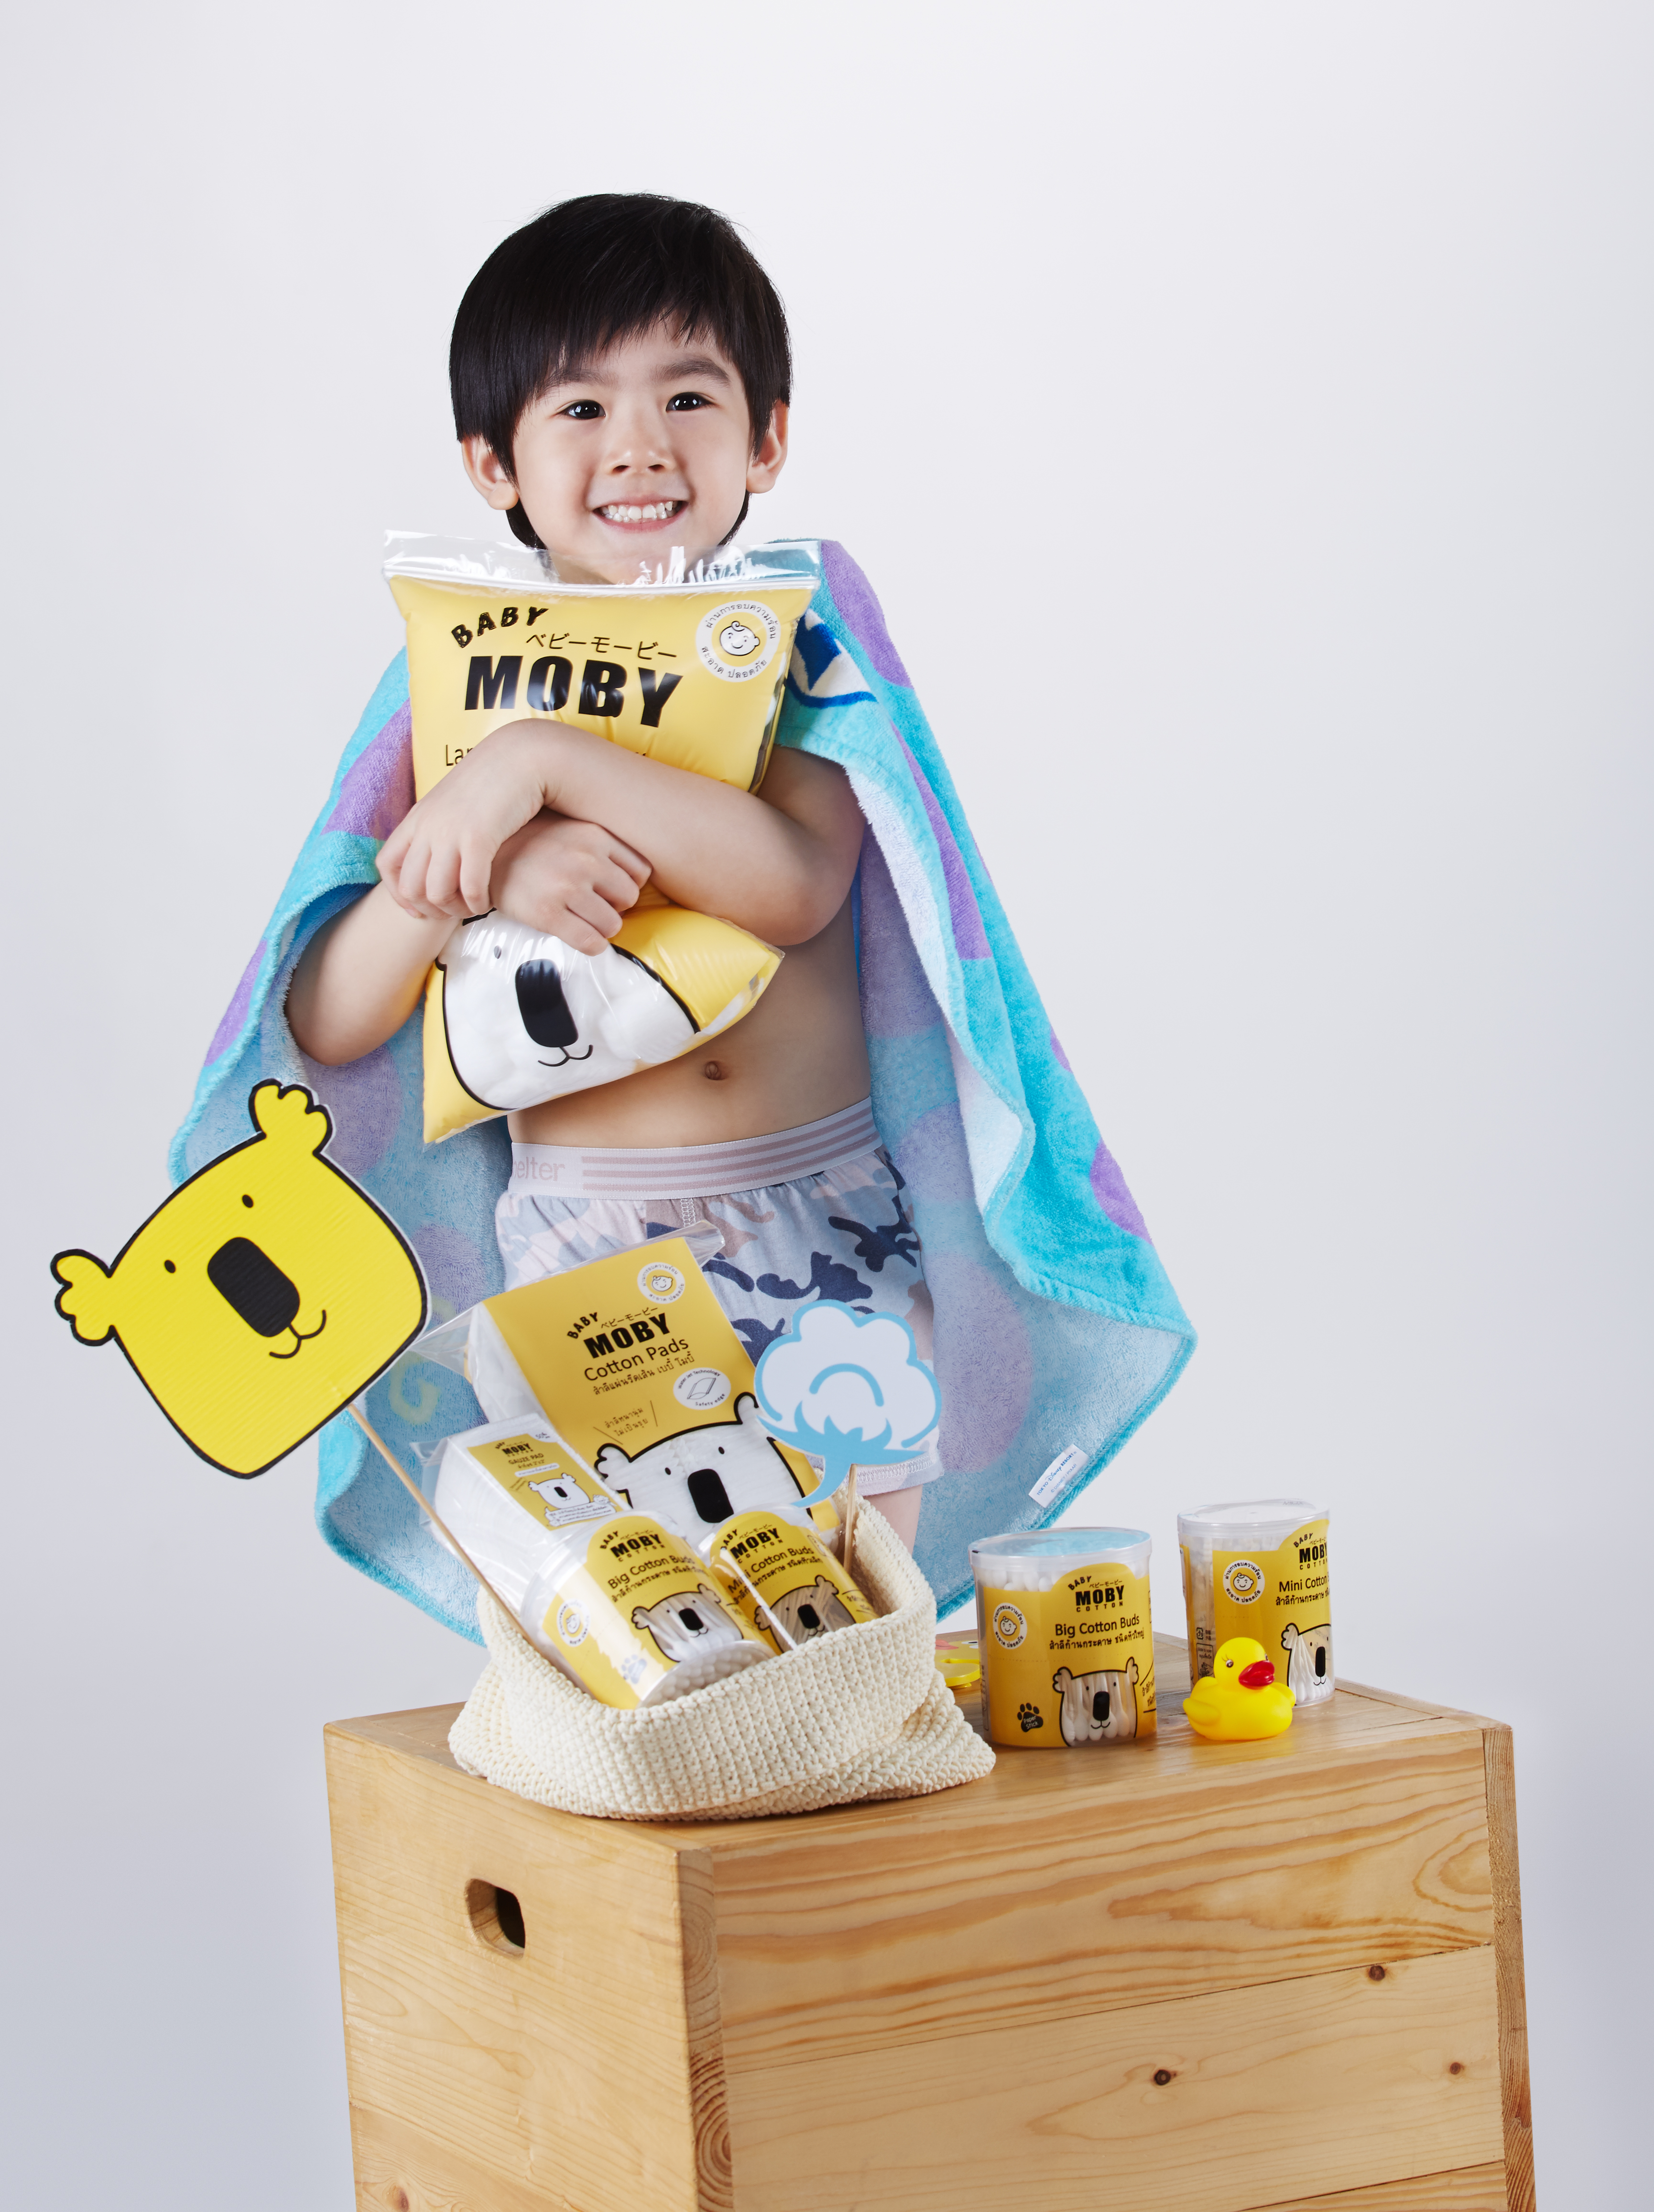 BabyMoby Ads for Babytime